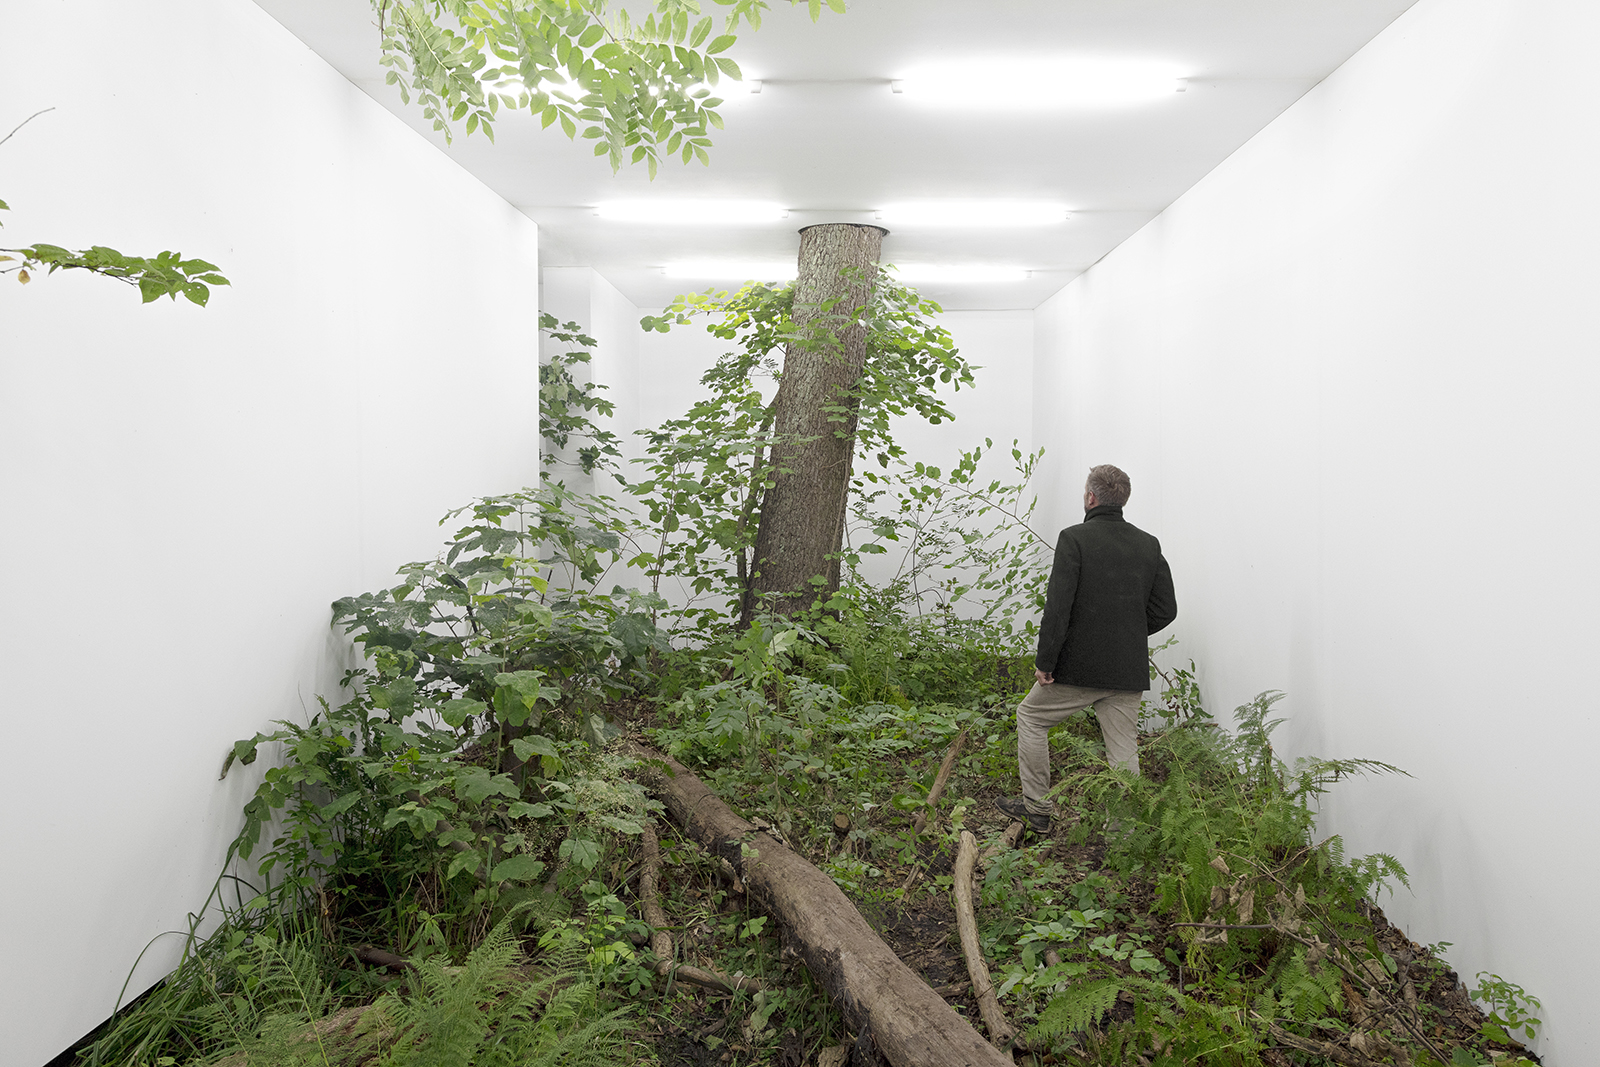 Isolation, Fabian Knecht transforms nature into an art gallery